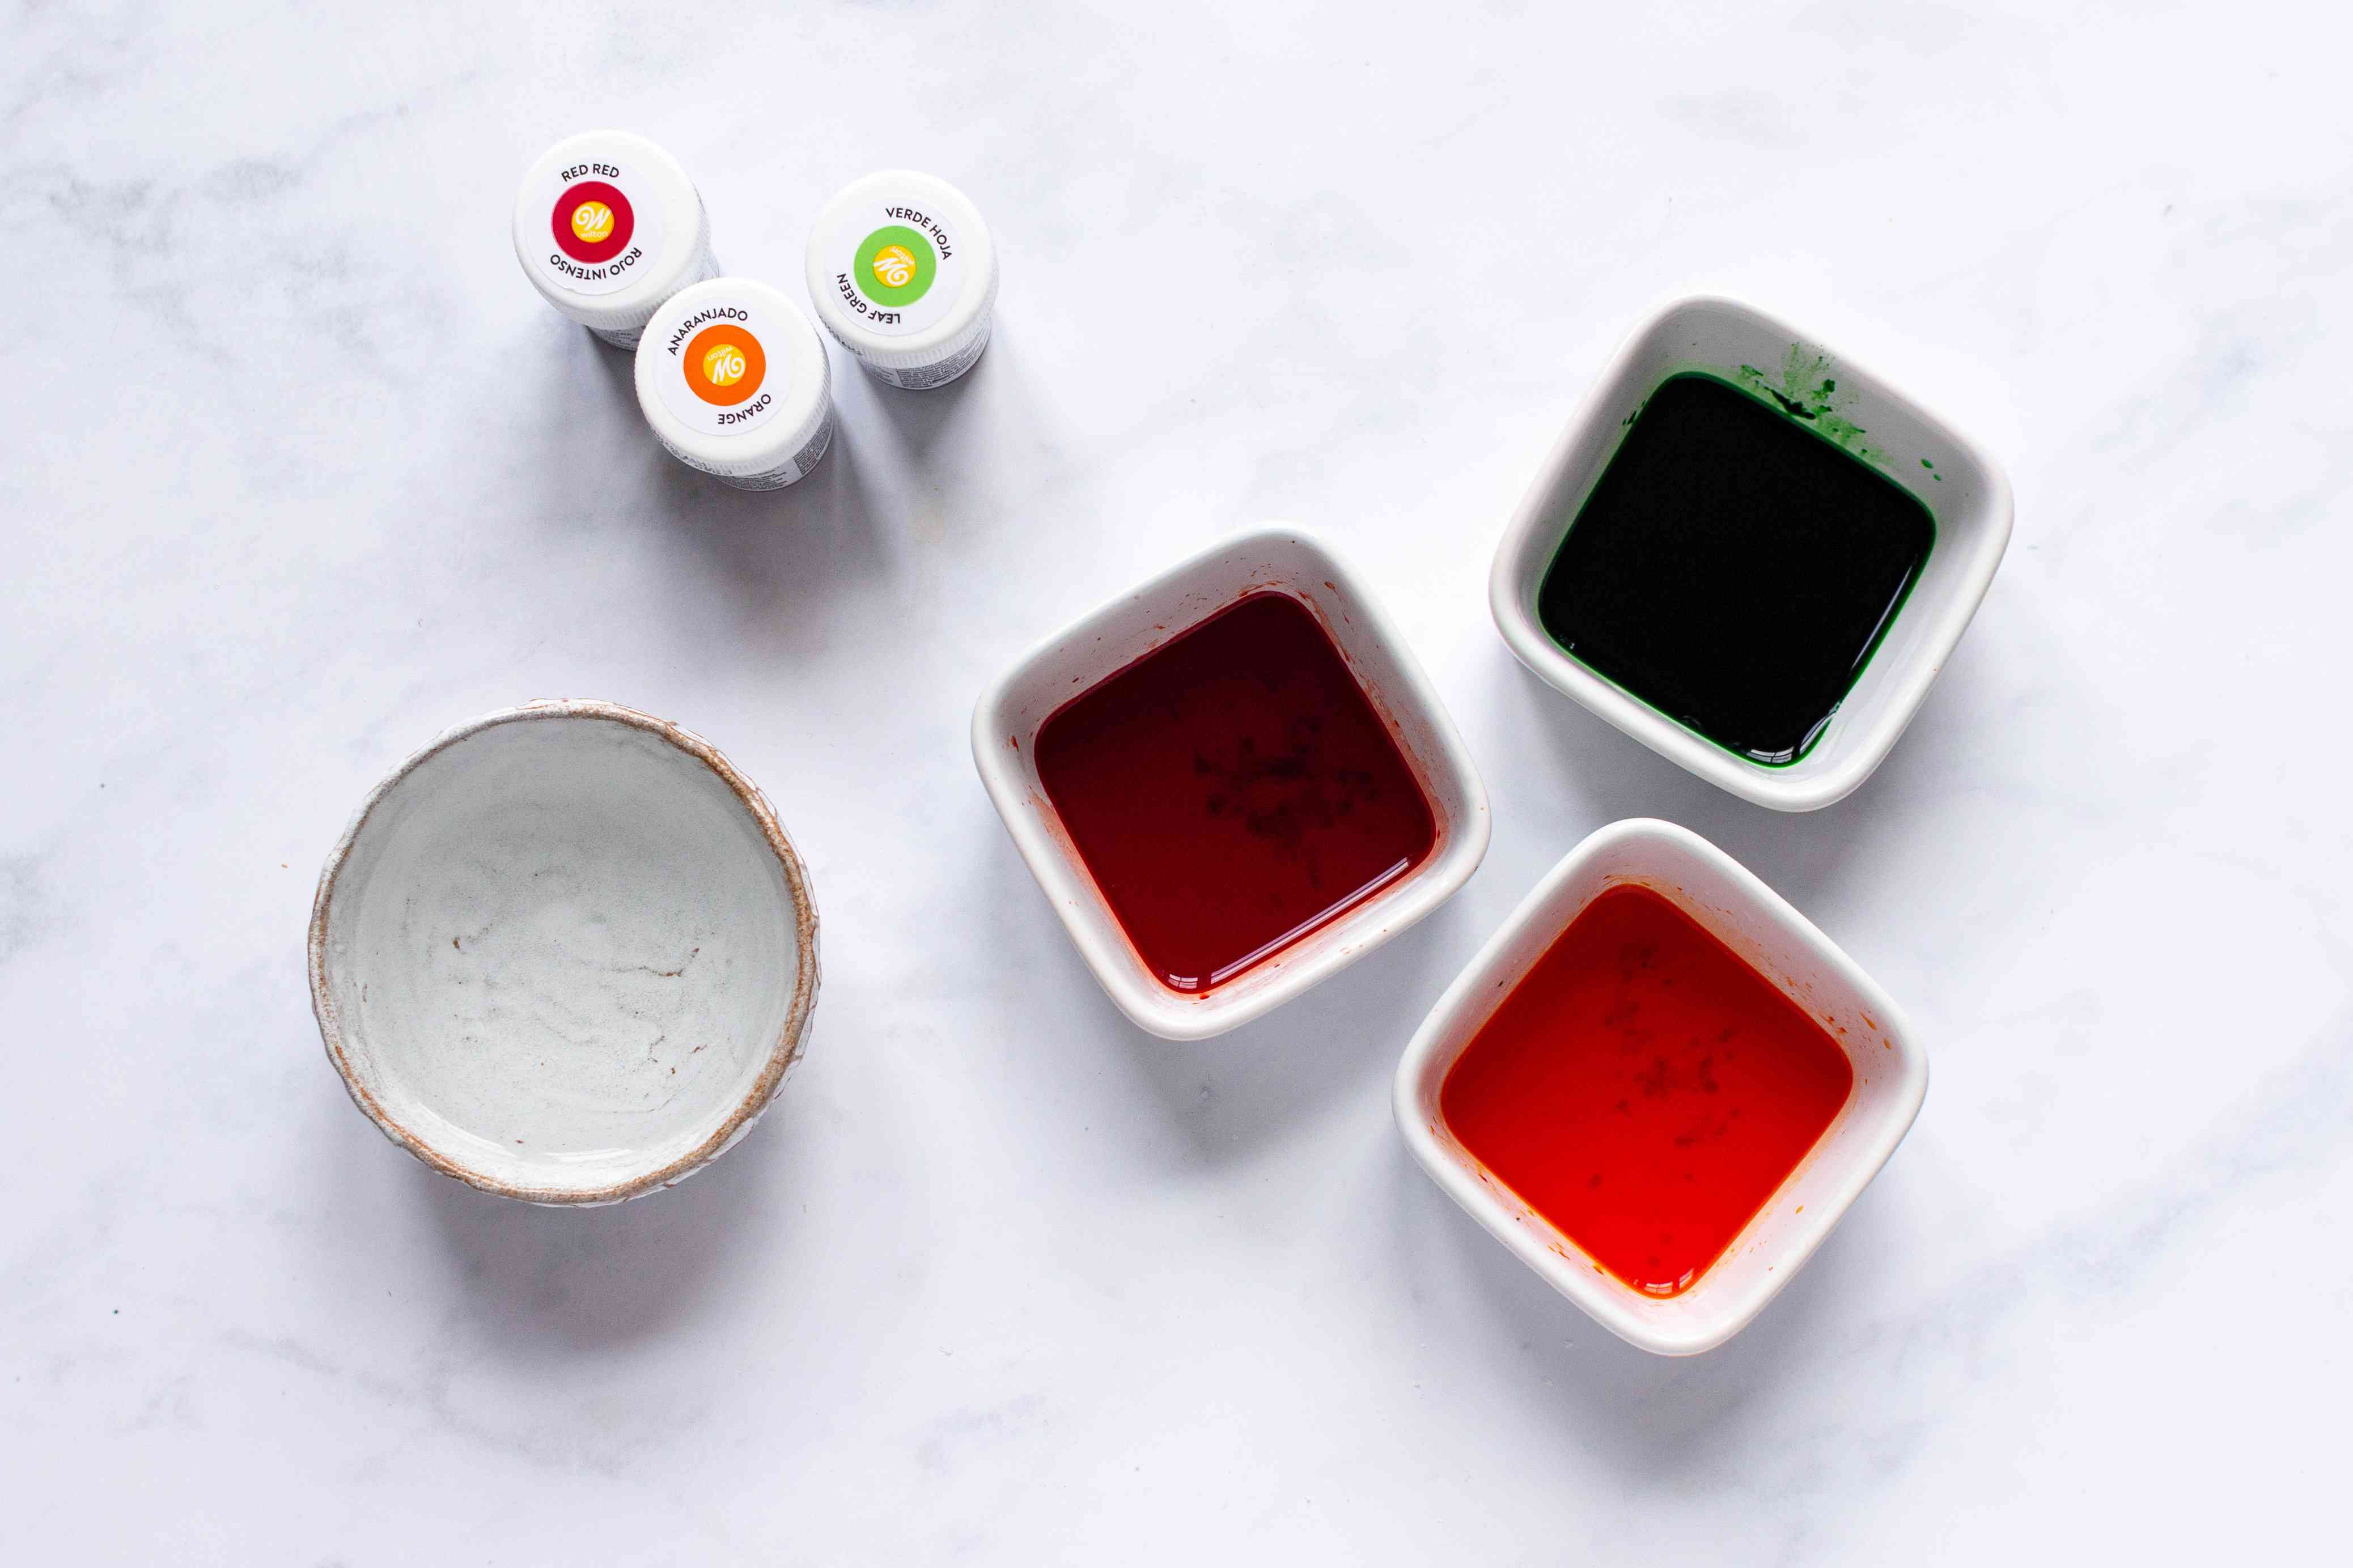 water and food coloring in bowls